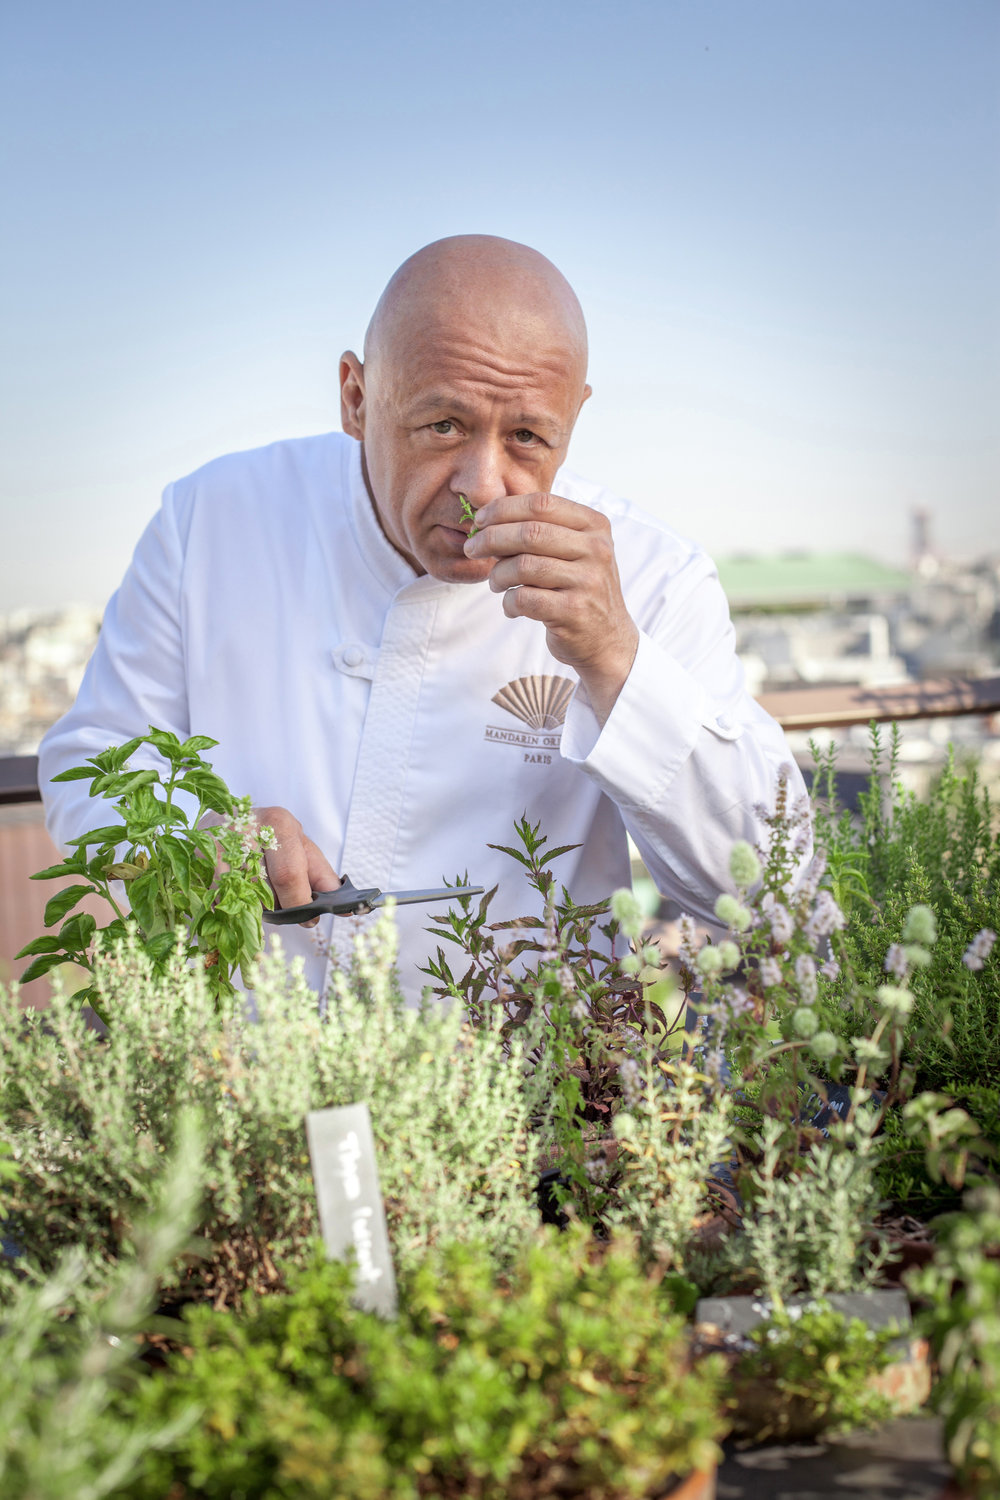 Aromatic Plant Garden / Hotel Mandarin Oriental Paris   Perched on the roof of the Hotel Mandarin Oriental Paris we created a new concept with aromatic plants for use by the star chef Thierry Marx.